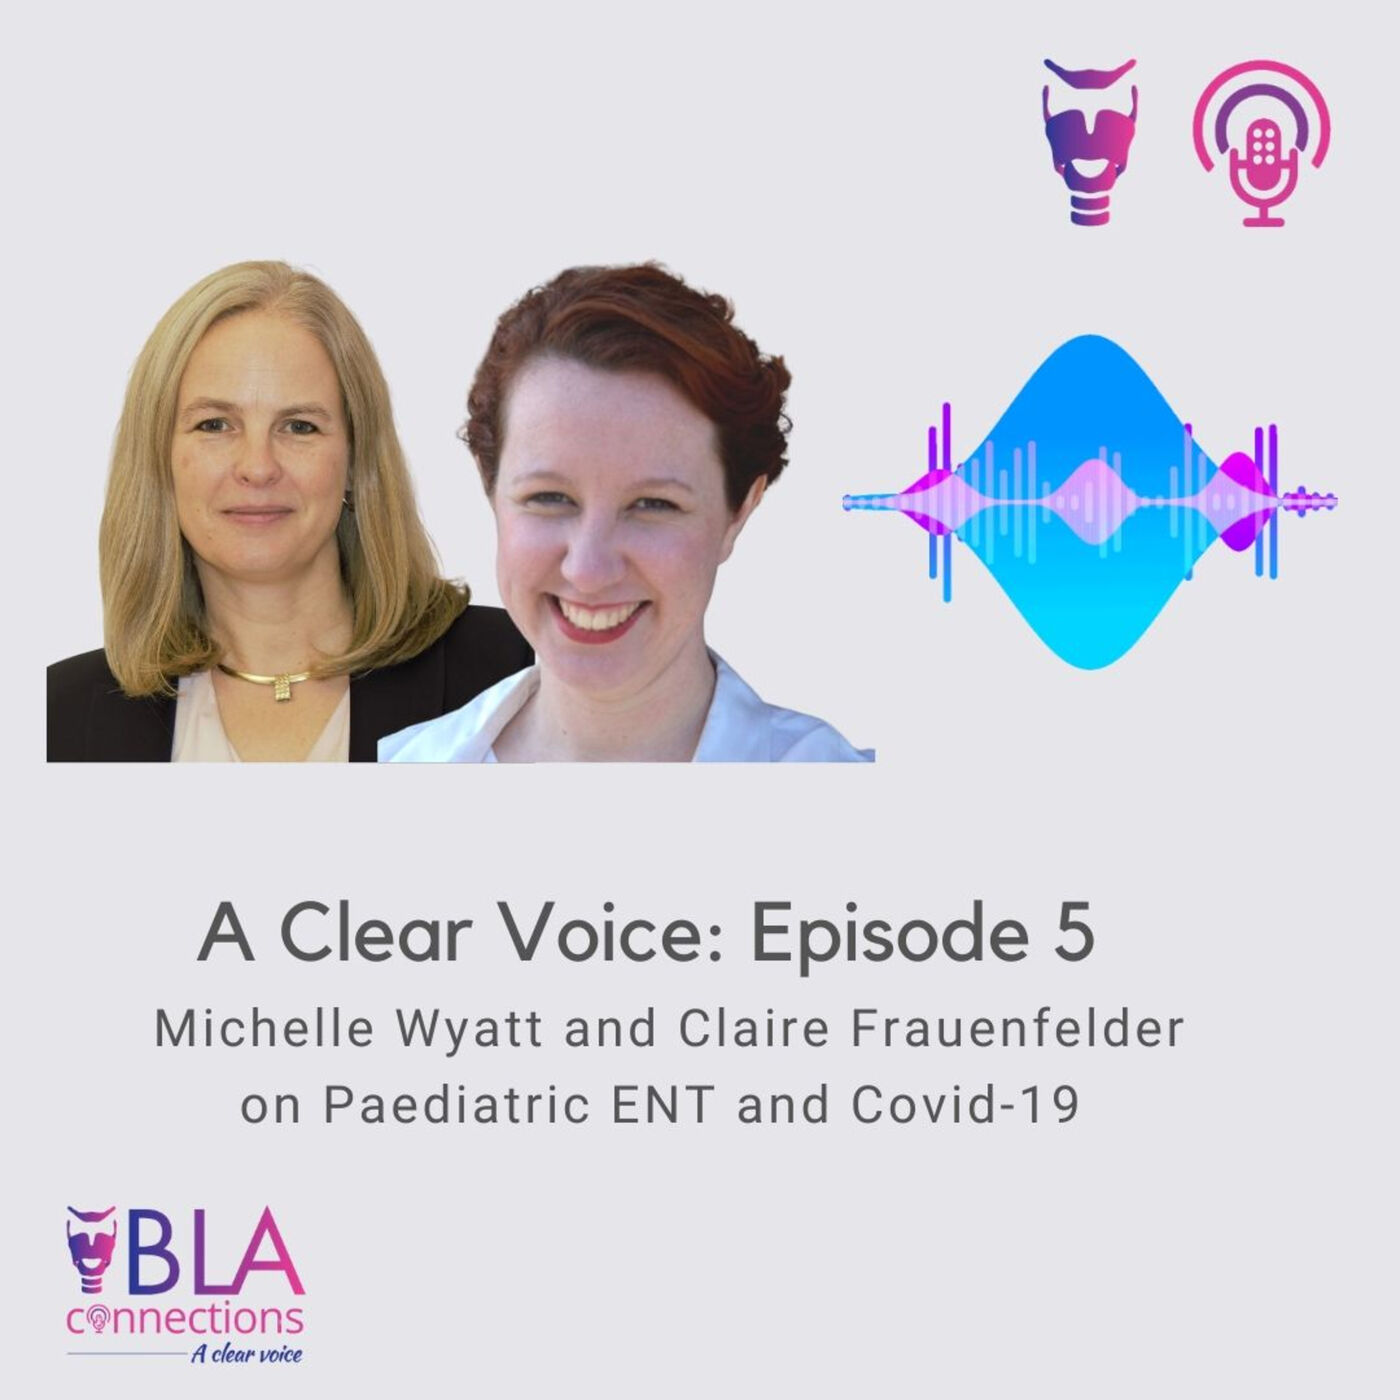 S1 Ep 5: Michelle Wyatt and Claire Frauenfelder on Paediatric ENT and Covid-19